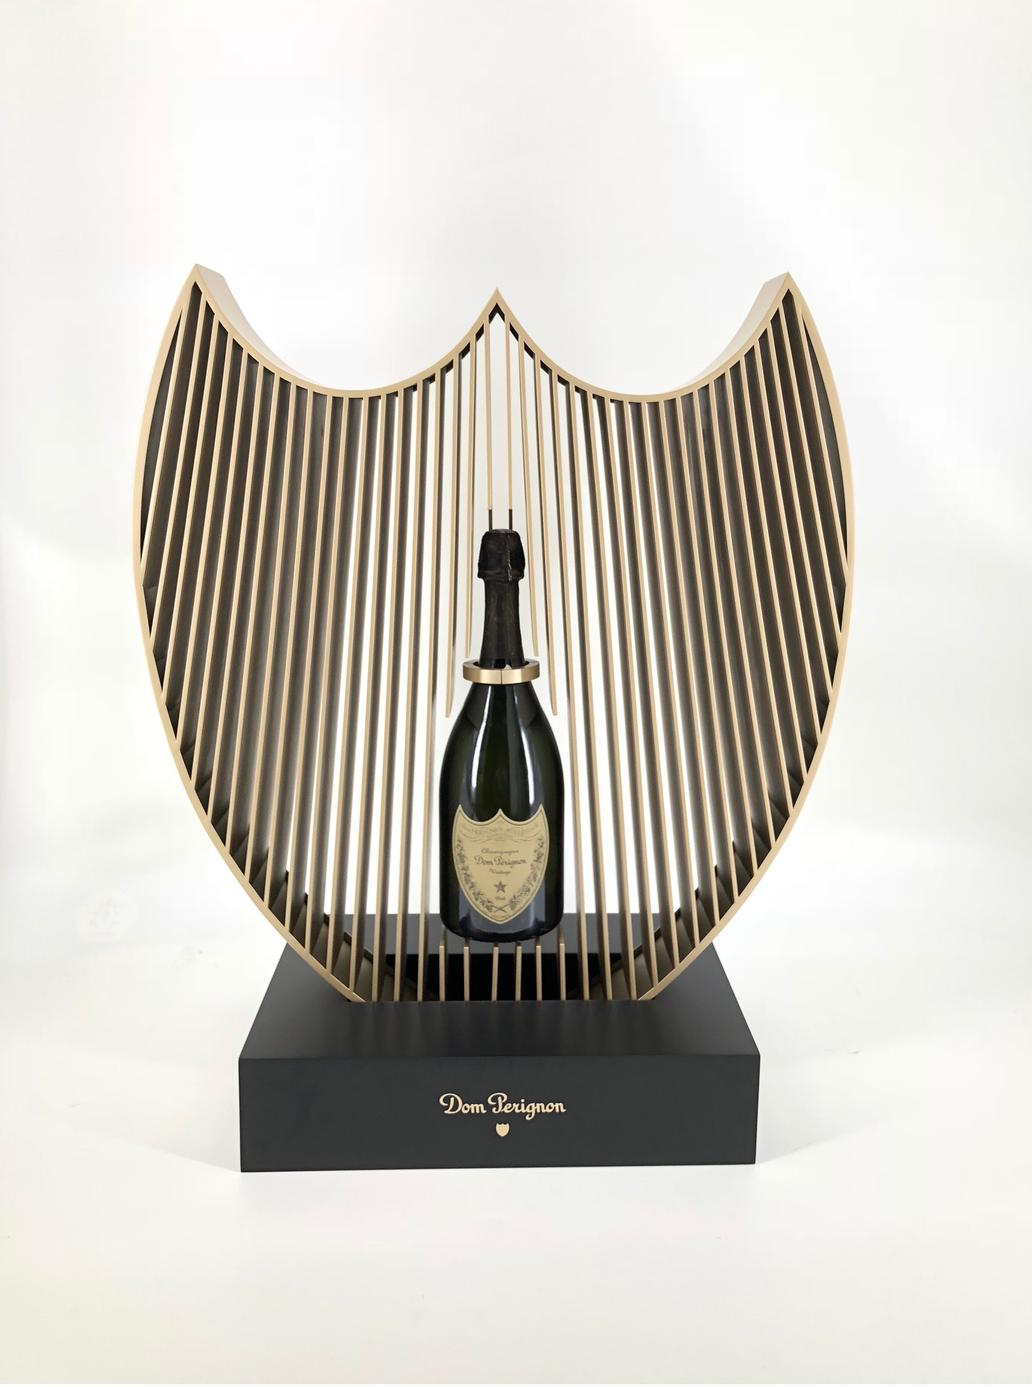 dom-perignon-shield-bar-discotheque-media6-plv-permanante-luxe